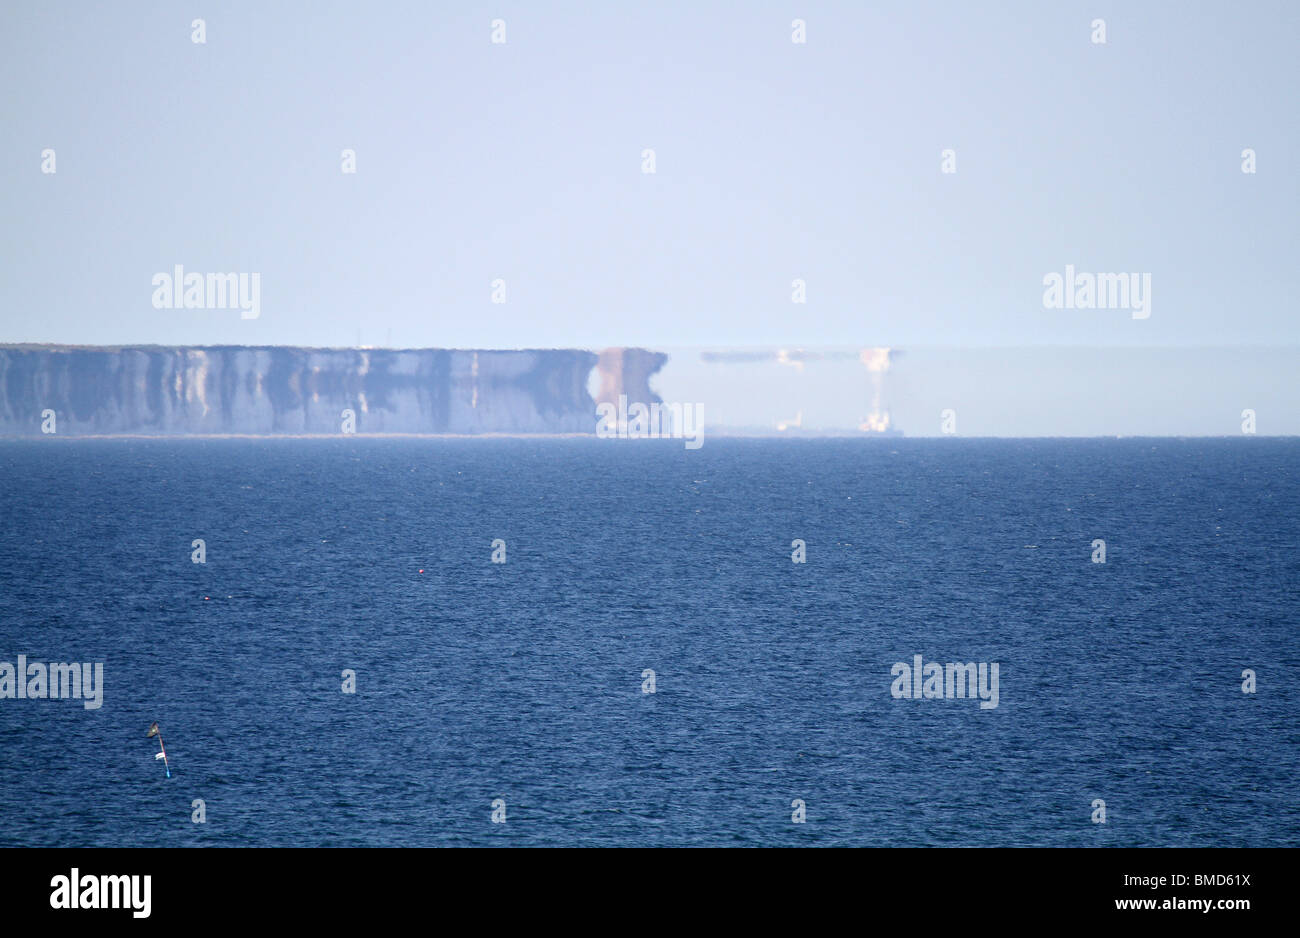 Mirage in hot weather in north sea off UK coast. - Stock Image